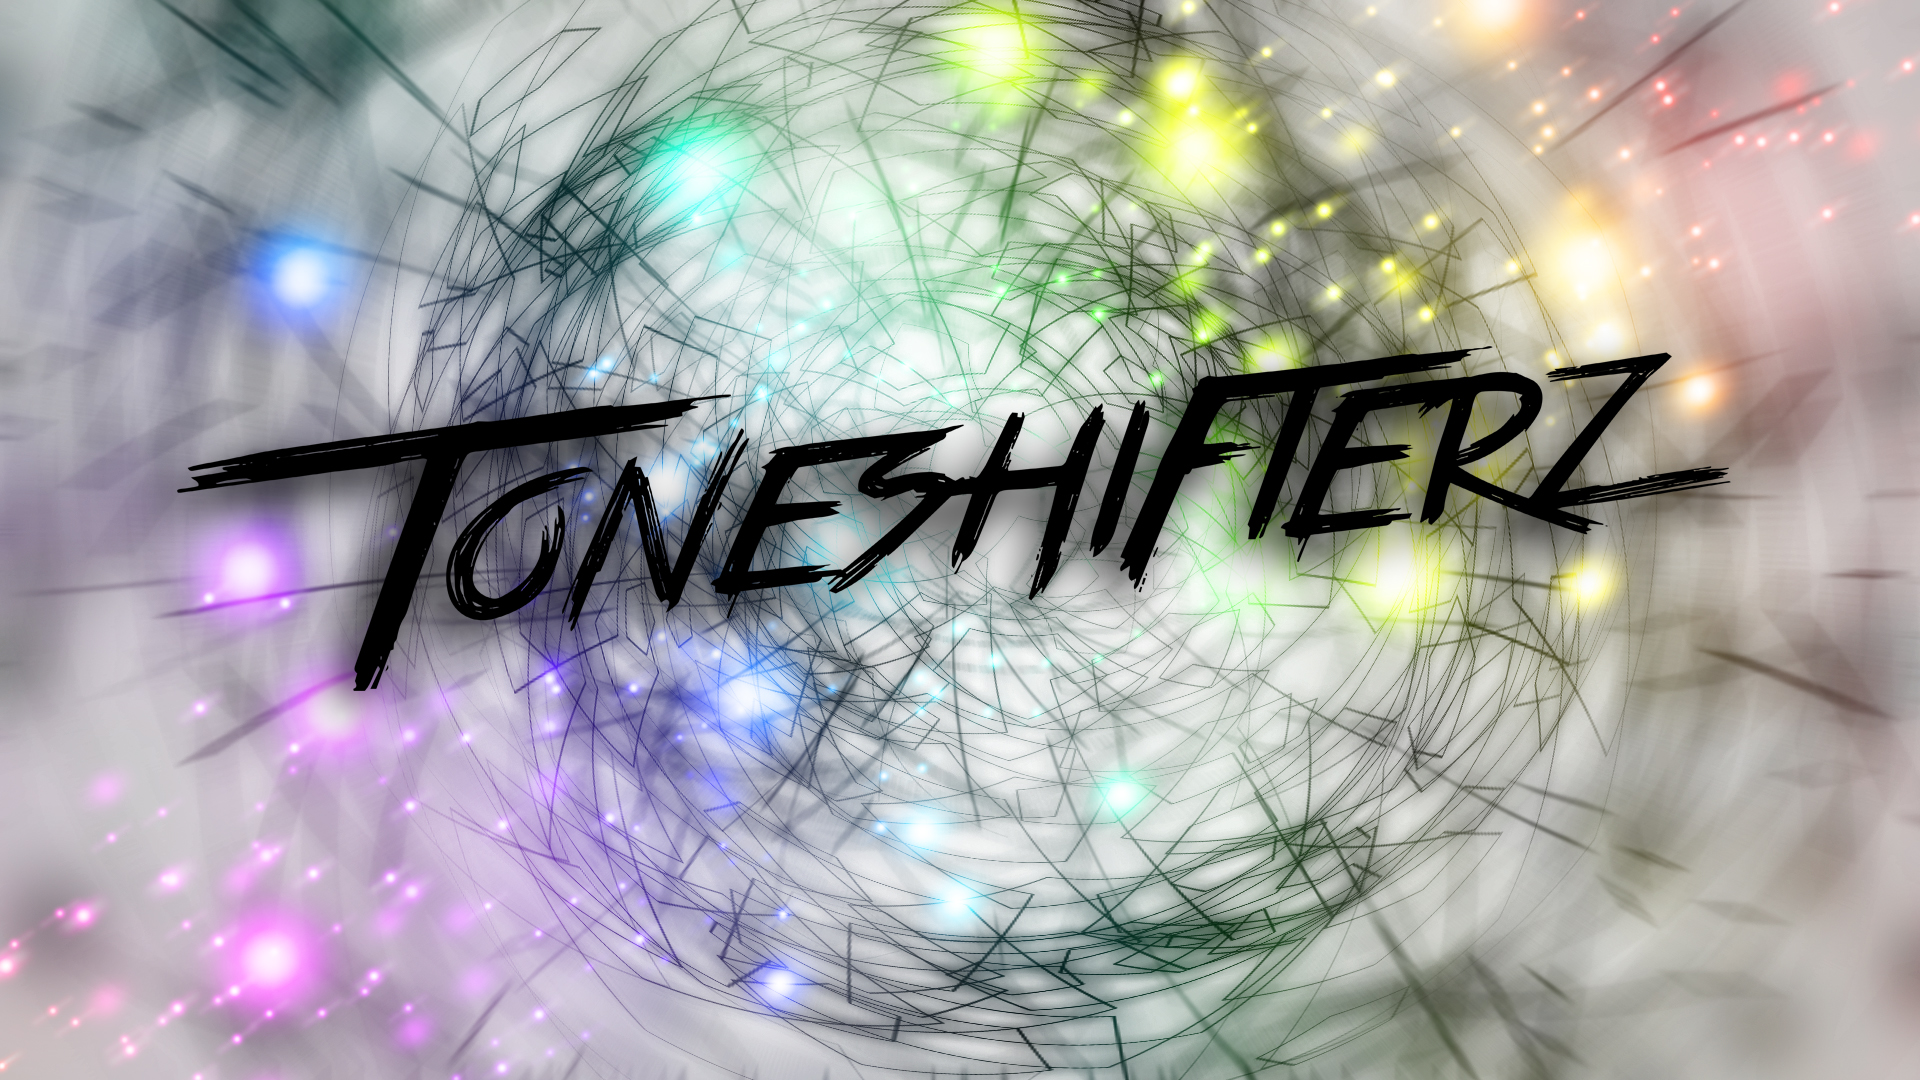 Download Wallpaper Music Tone - toneshifterz__wallpaper_request__by_hardii-d7i2nzk  Trends_174863.jpg